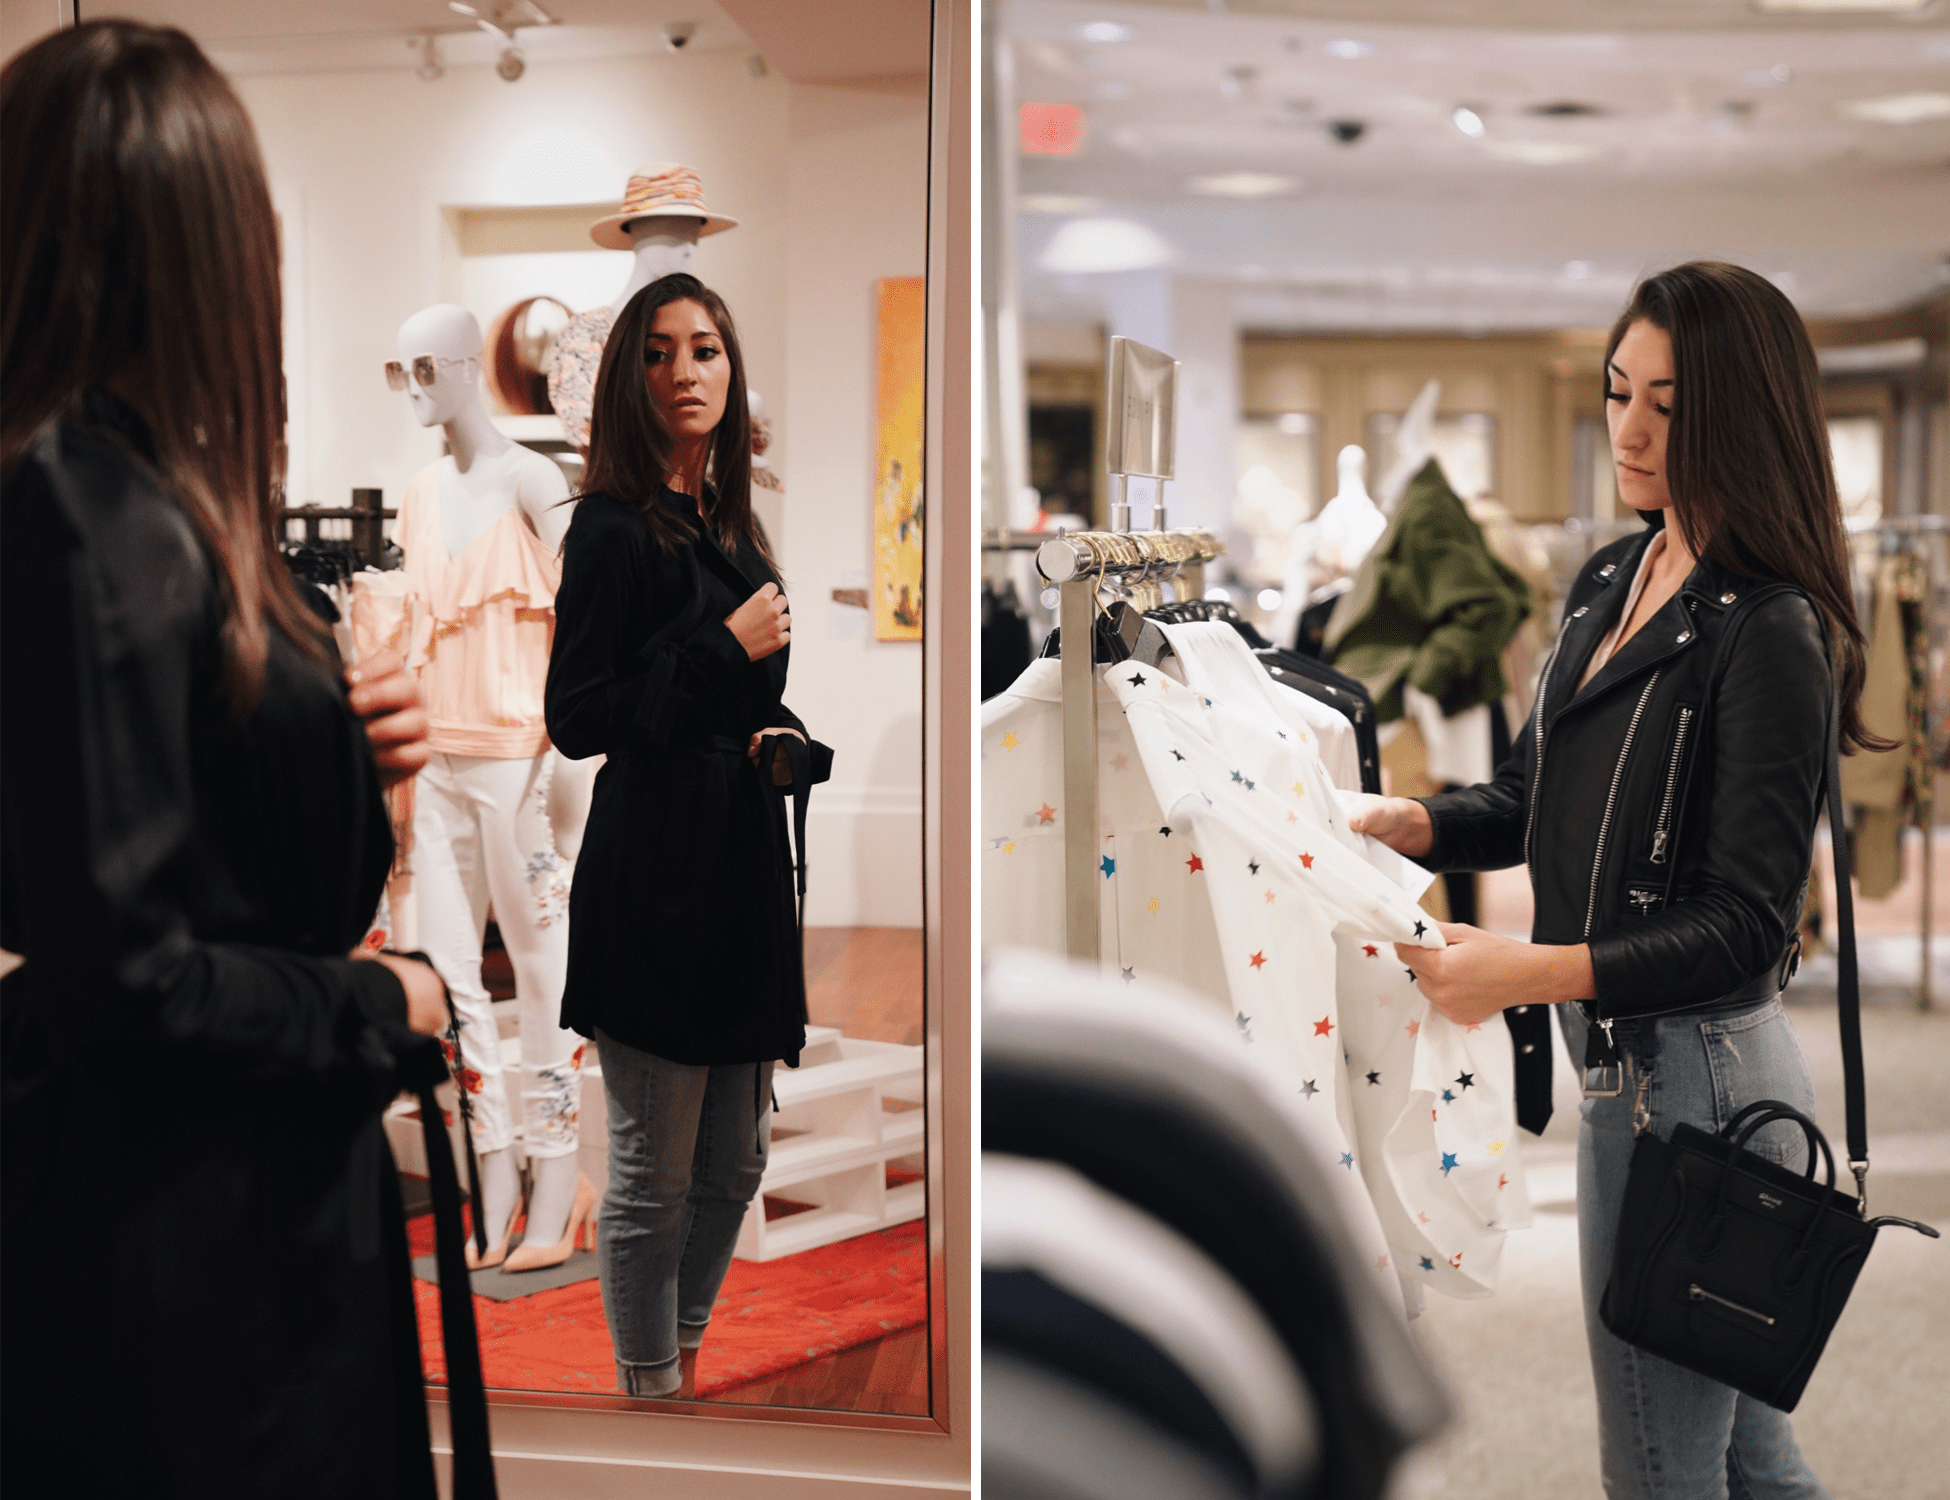 In addition to Neiman Marcus, Kira also stopped into their more edited, boutique concept shop, CUSP by Neiman Marcus. There, she discovered a variety of versatile pieces that will serve her well no matter where her travels take her.